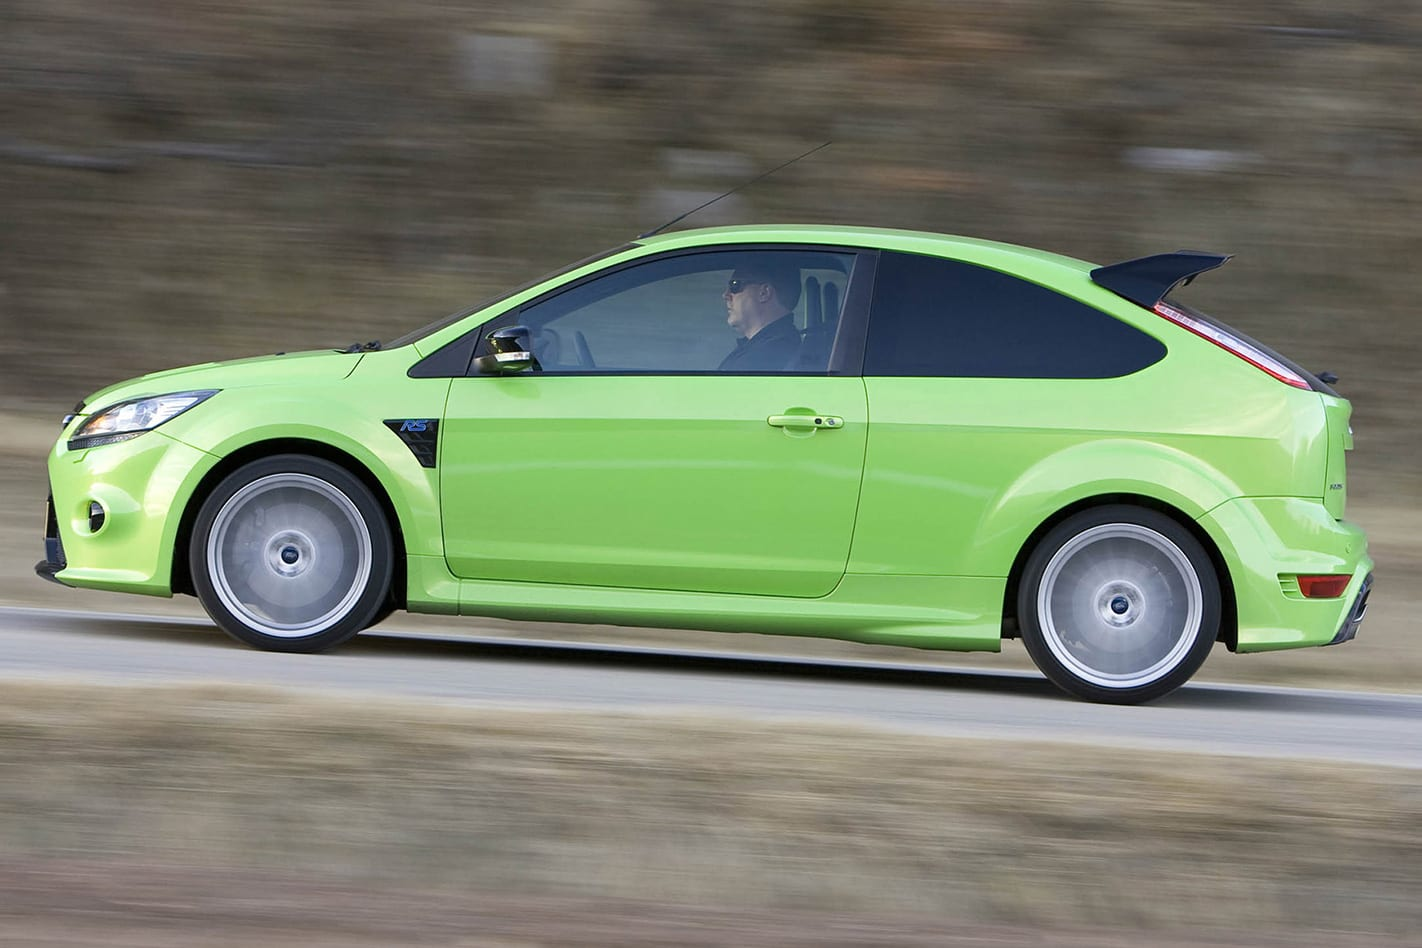 2008 Ford Focus RS drive